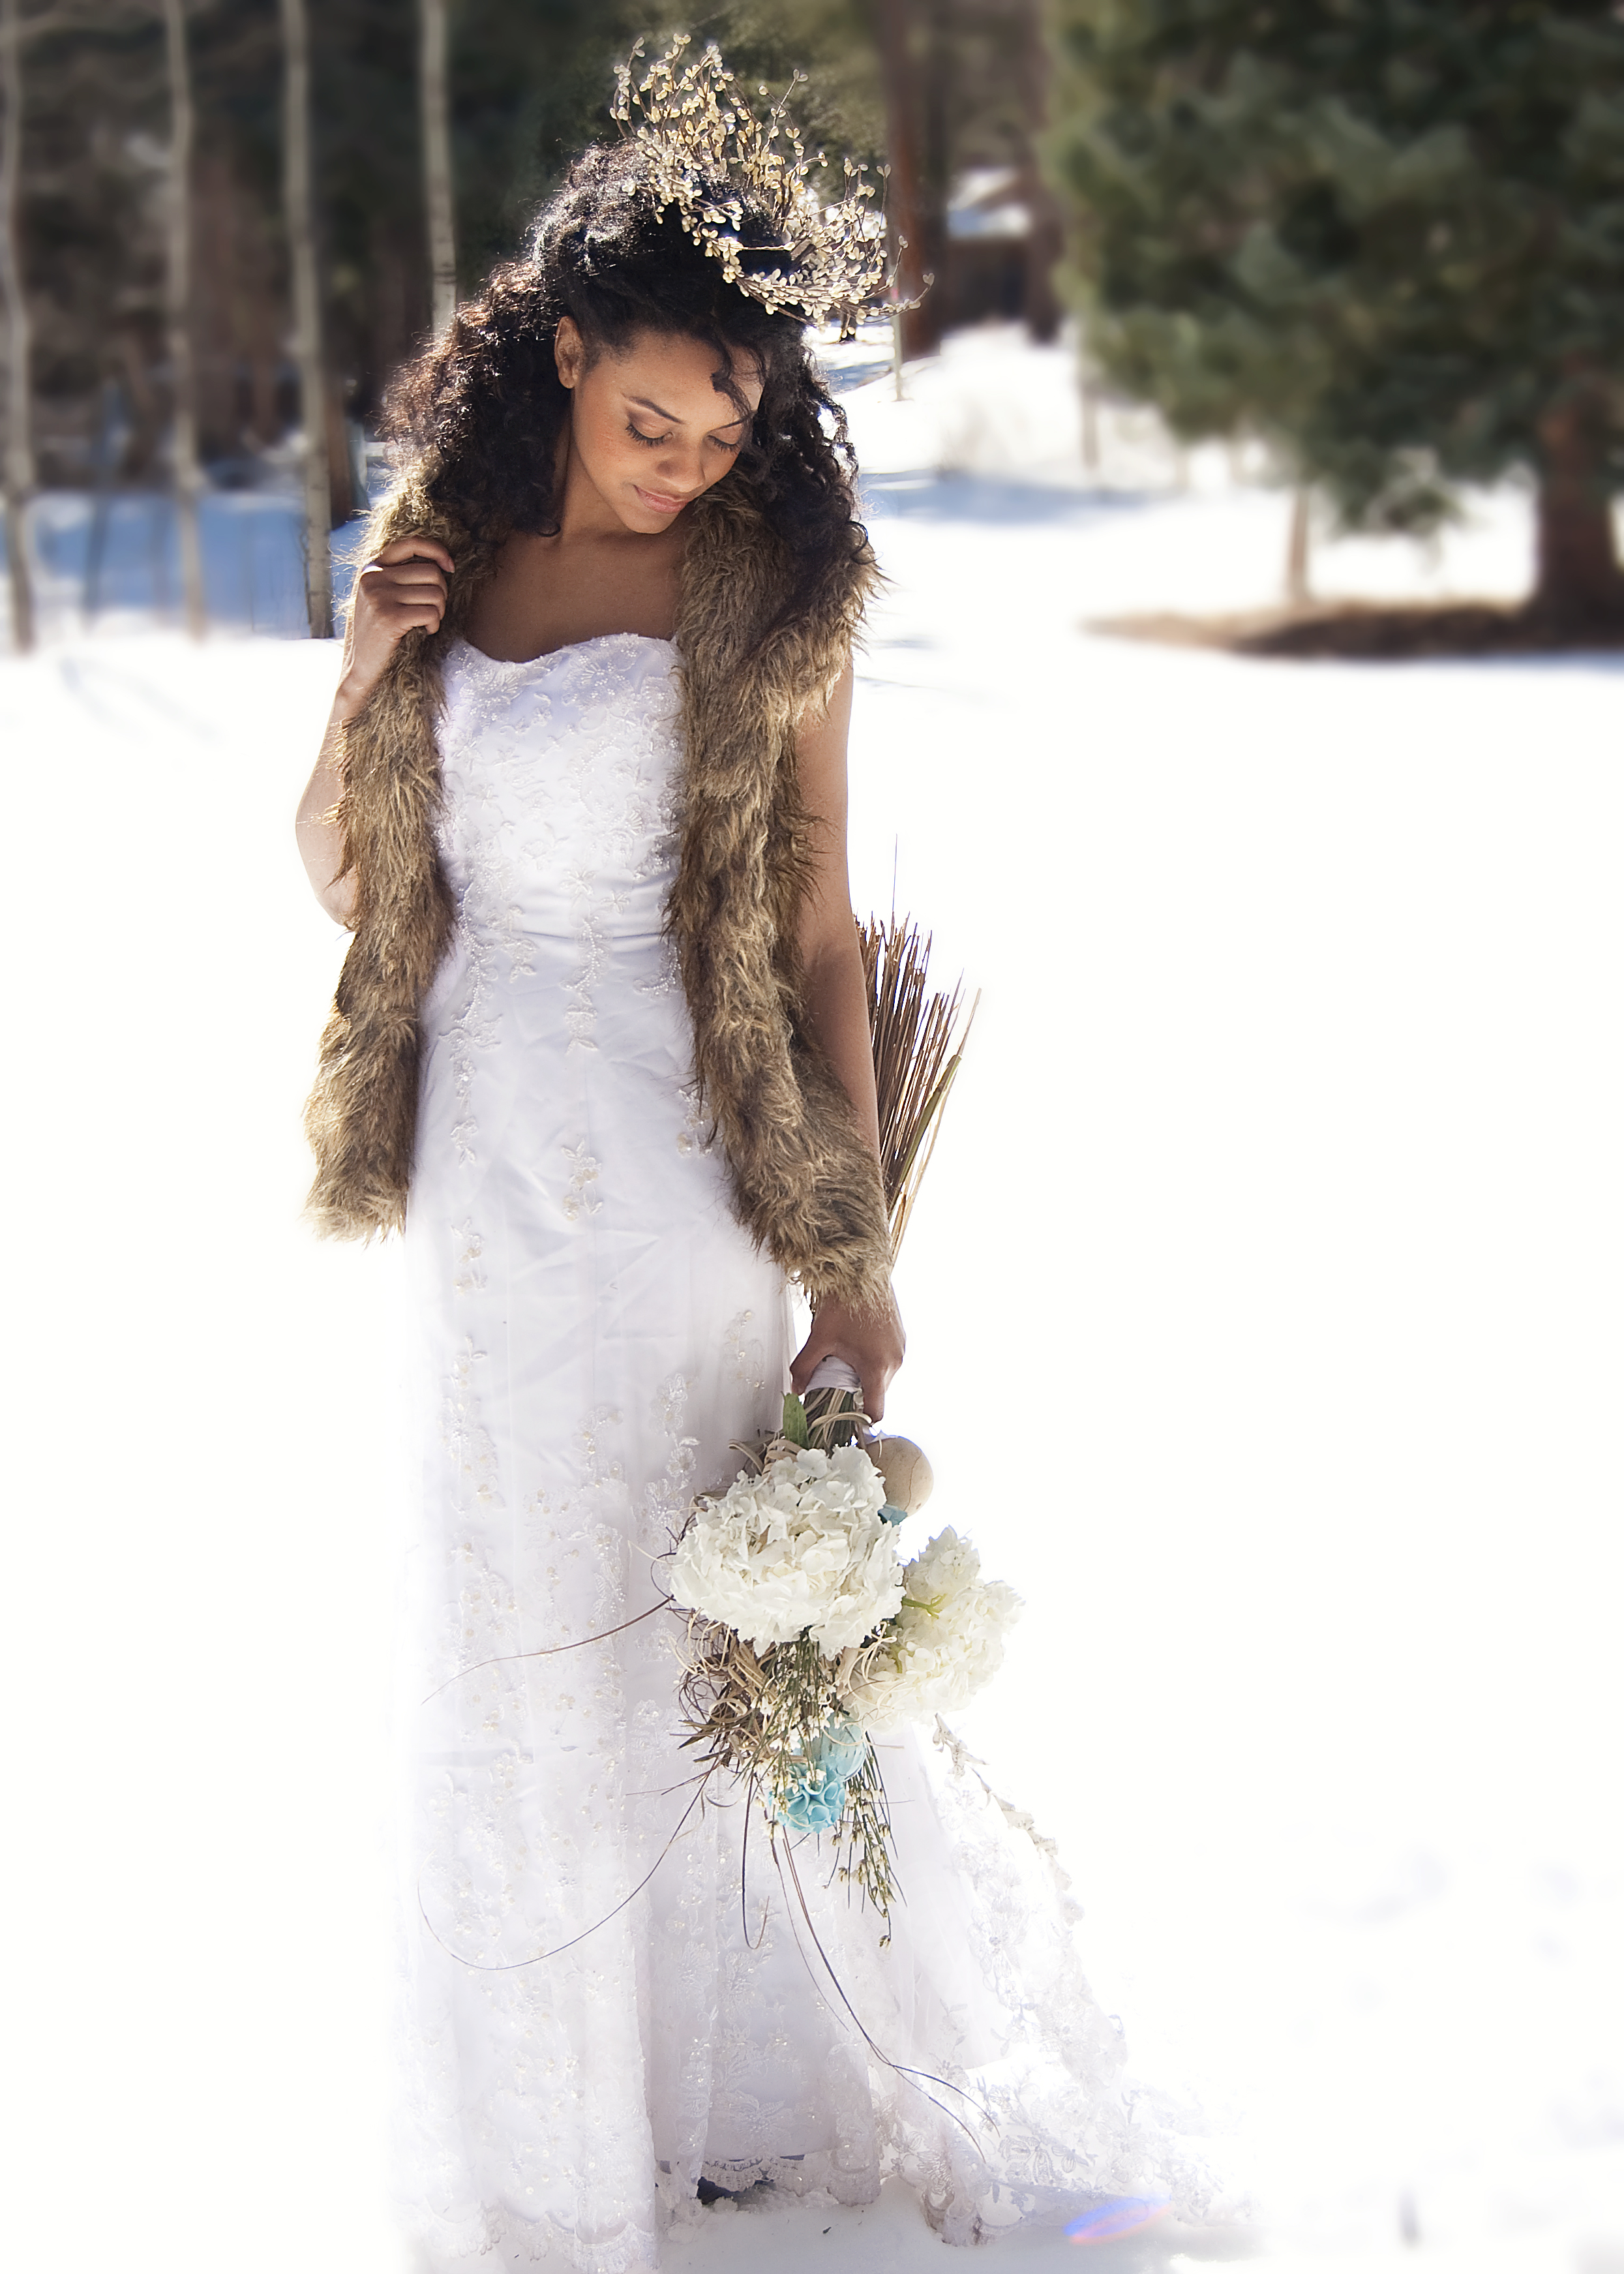 180-degrees-snow-bride-styled-shoot-dsc_1680.jpg